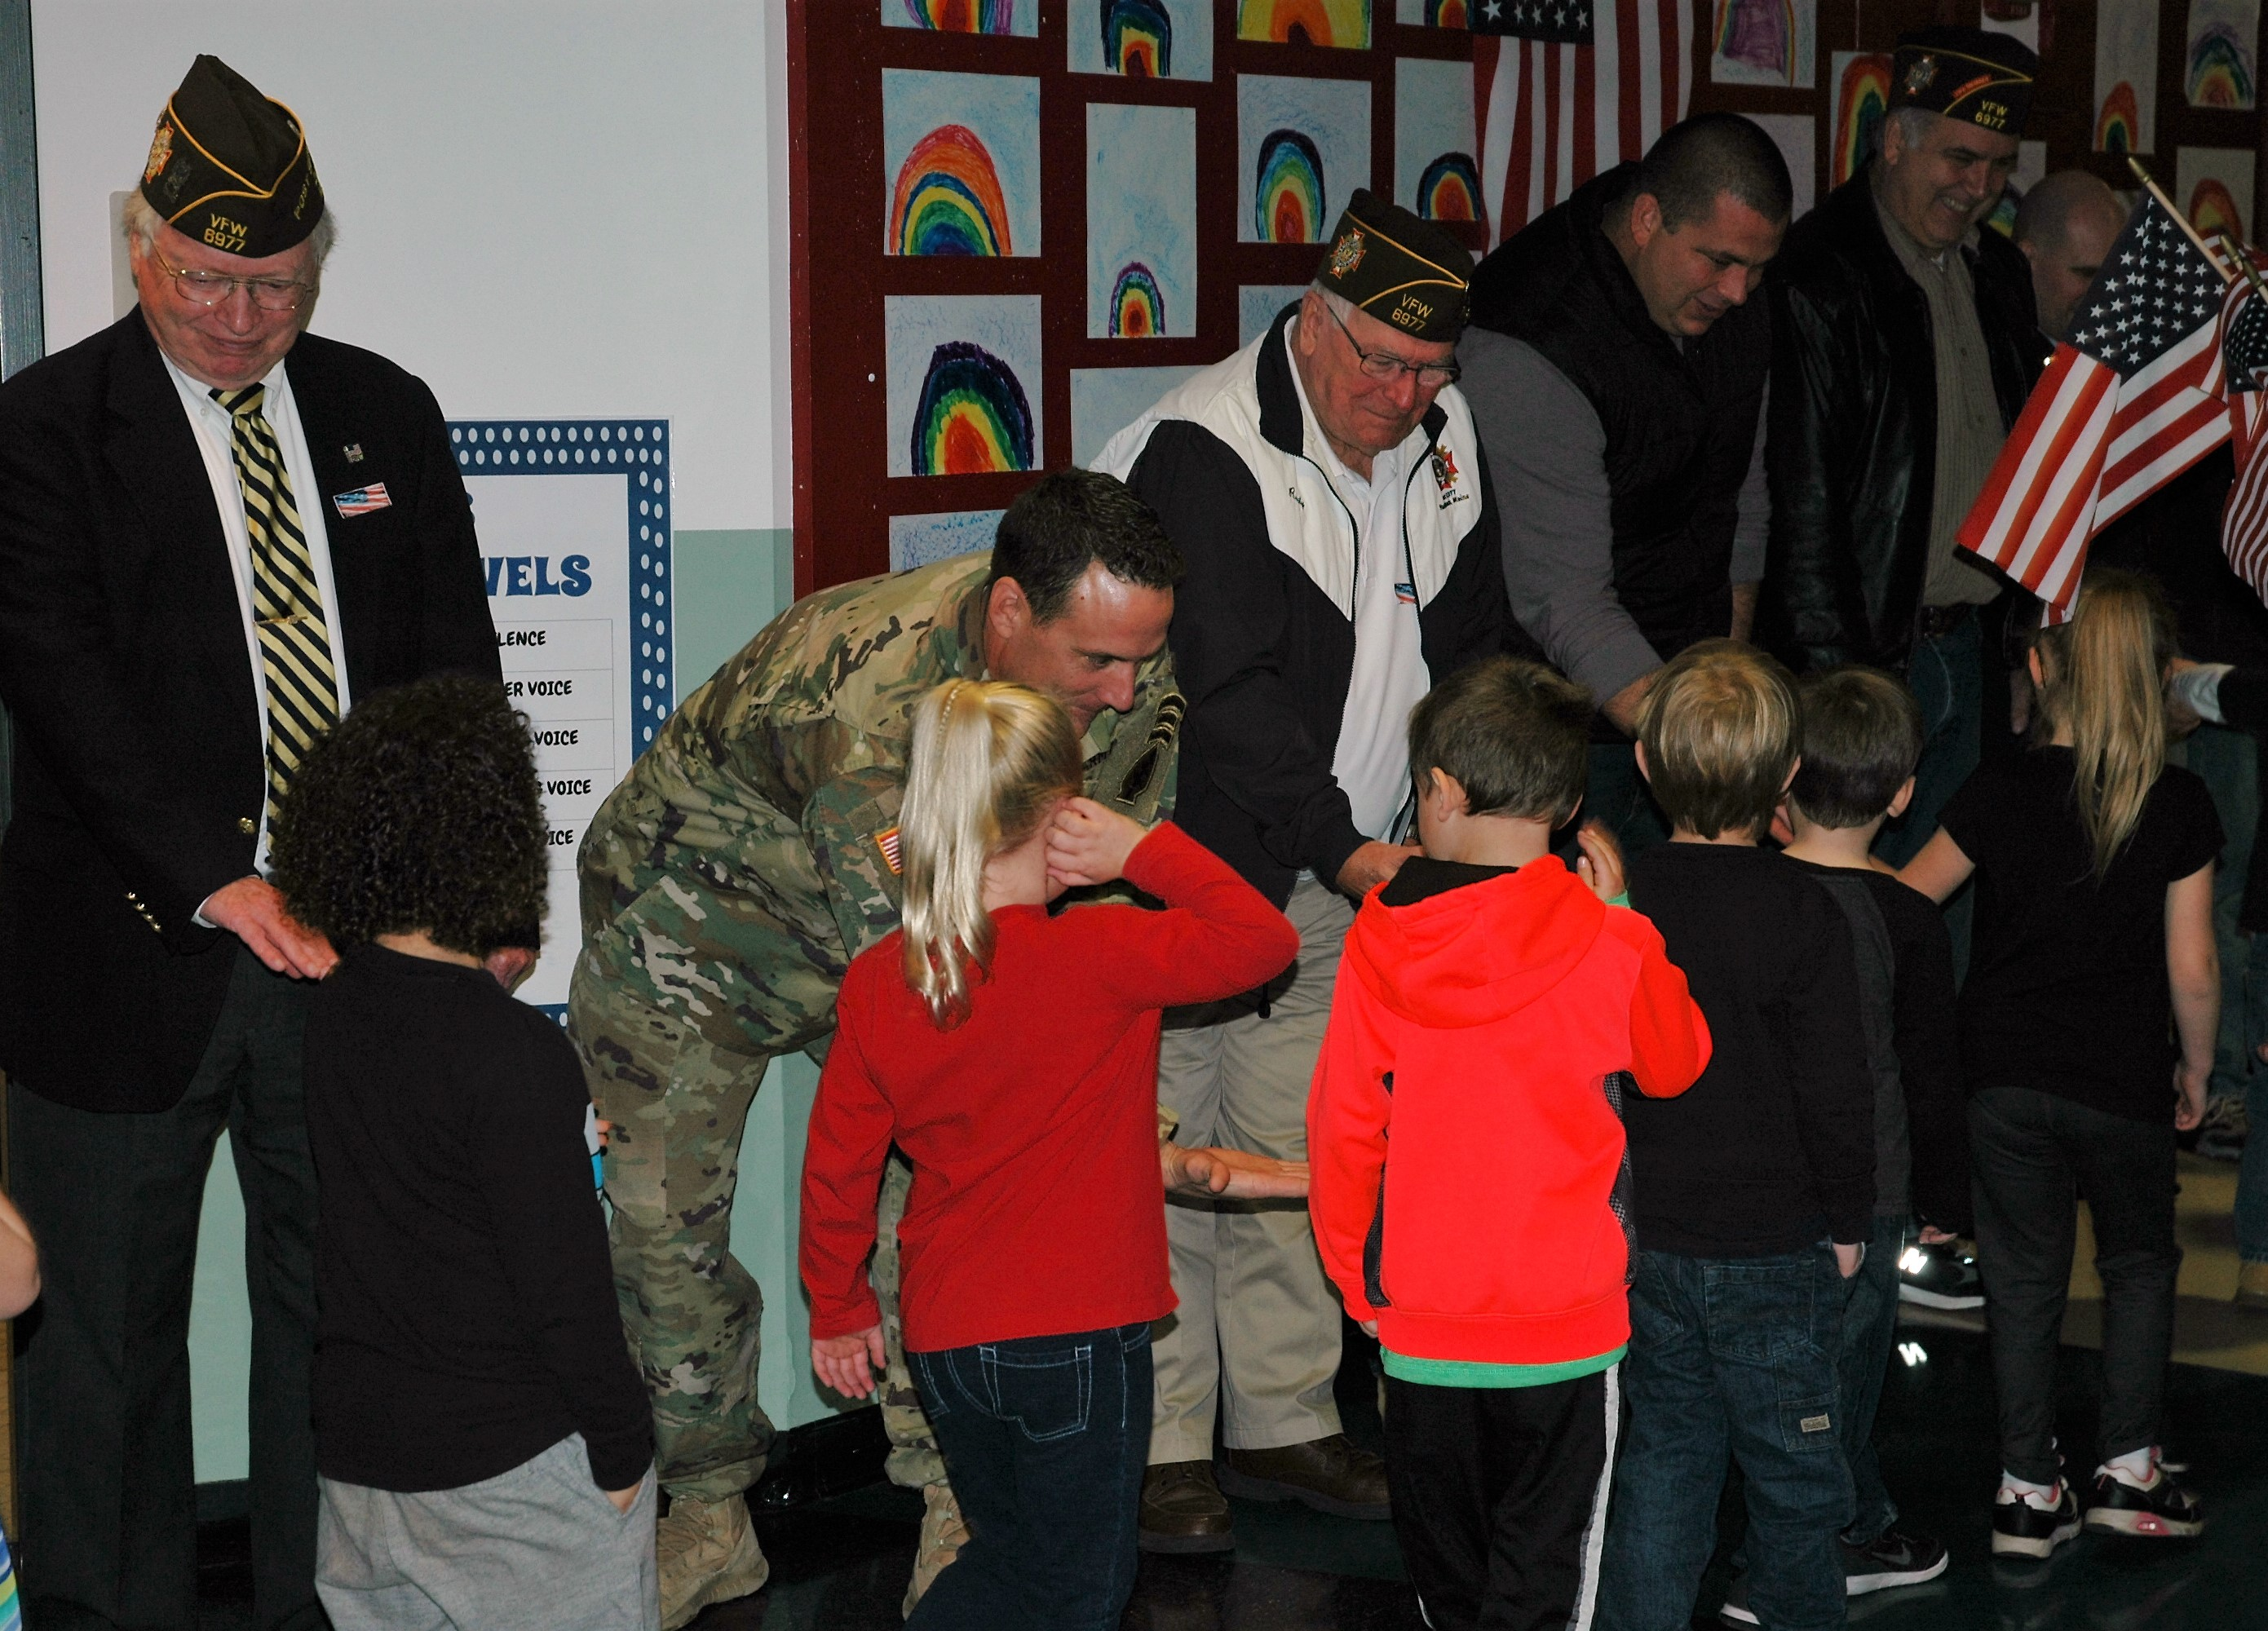 Students shake hands with veterans in the hallway of Wells Elementary School on Thursday as they leave an assembly. LIZ GOTTHELF/Journal Tribune